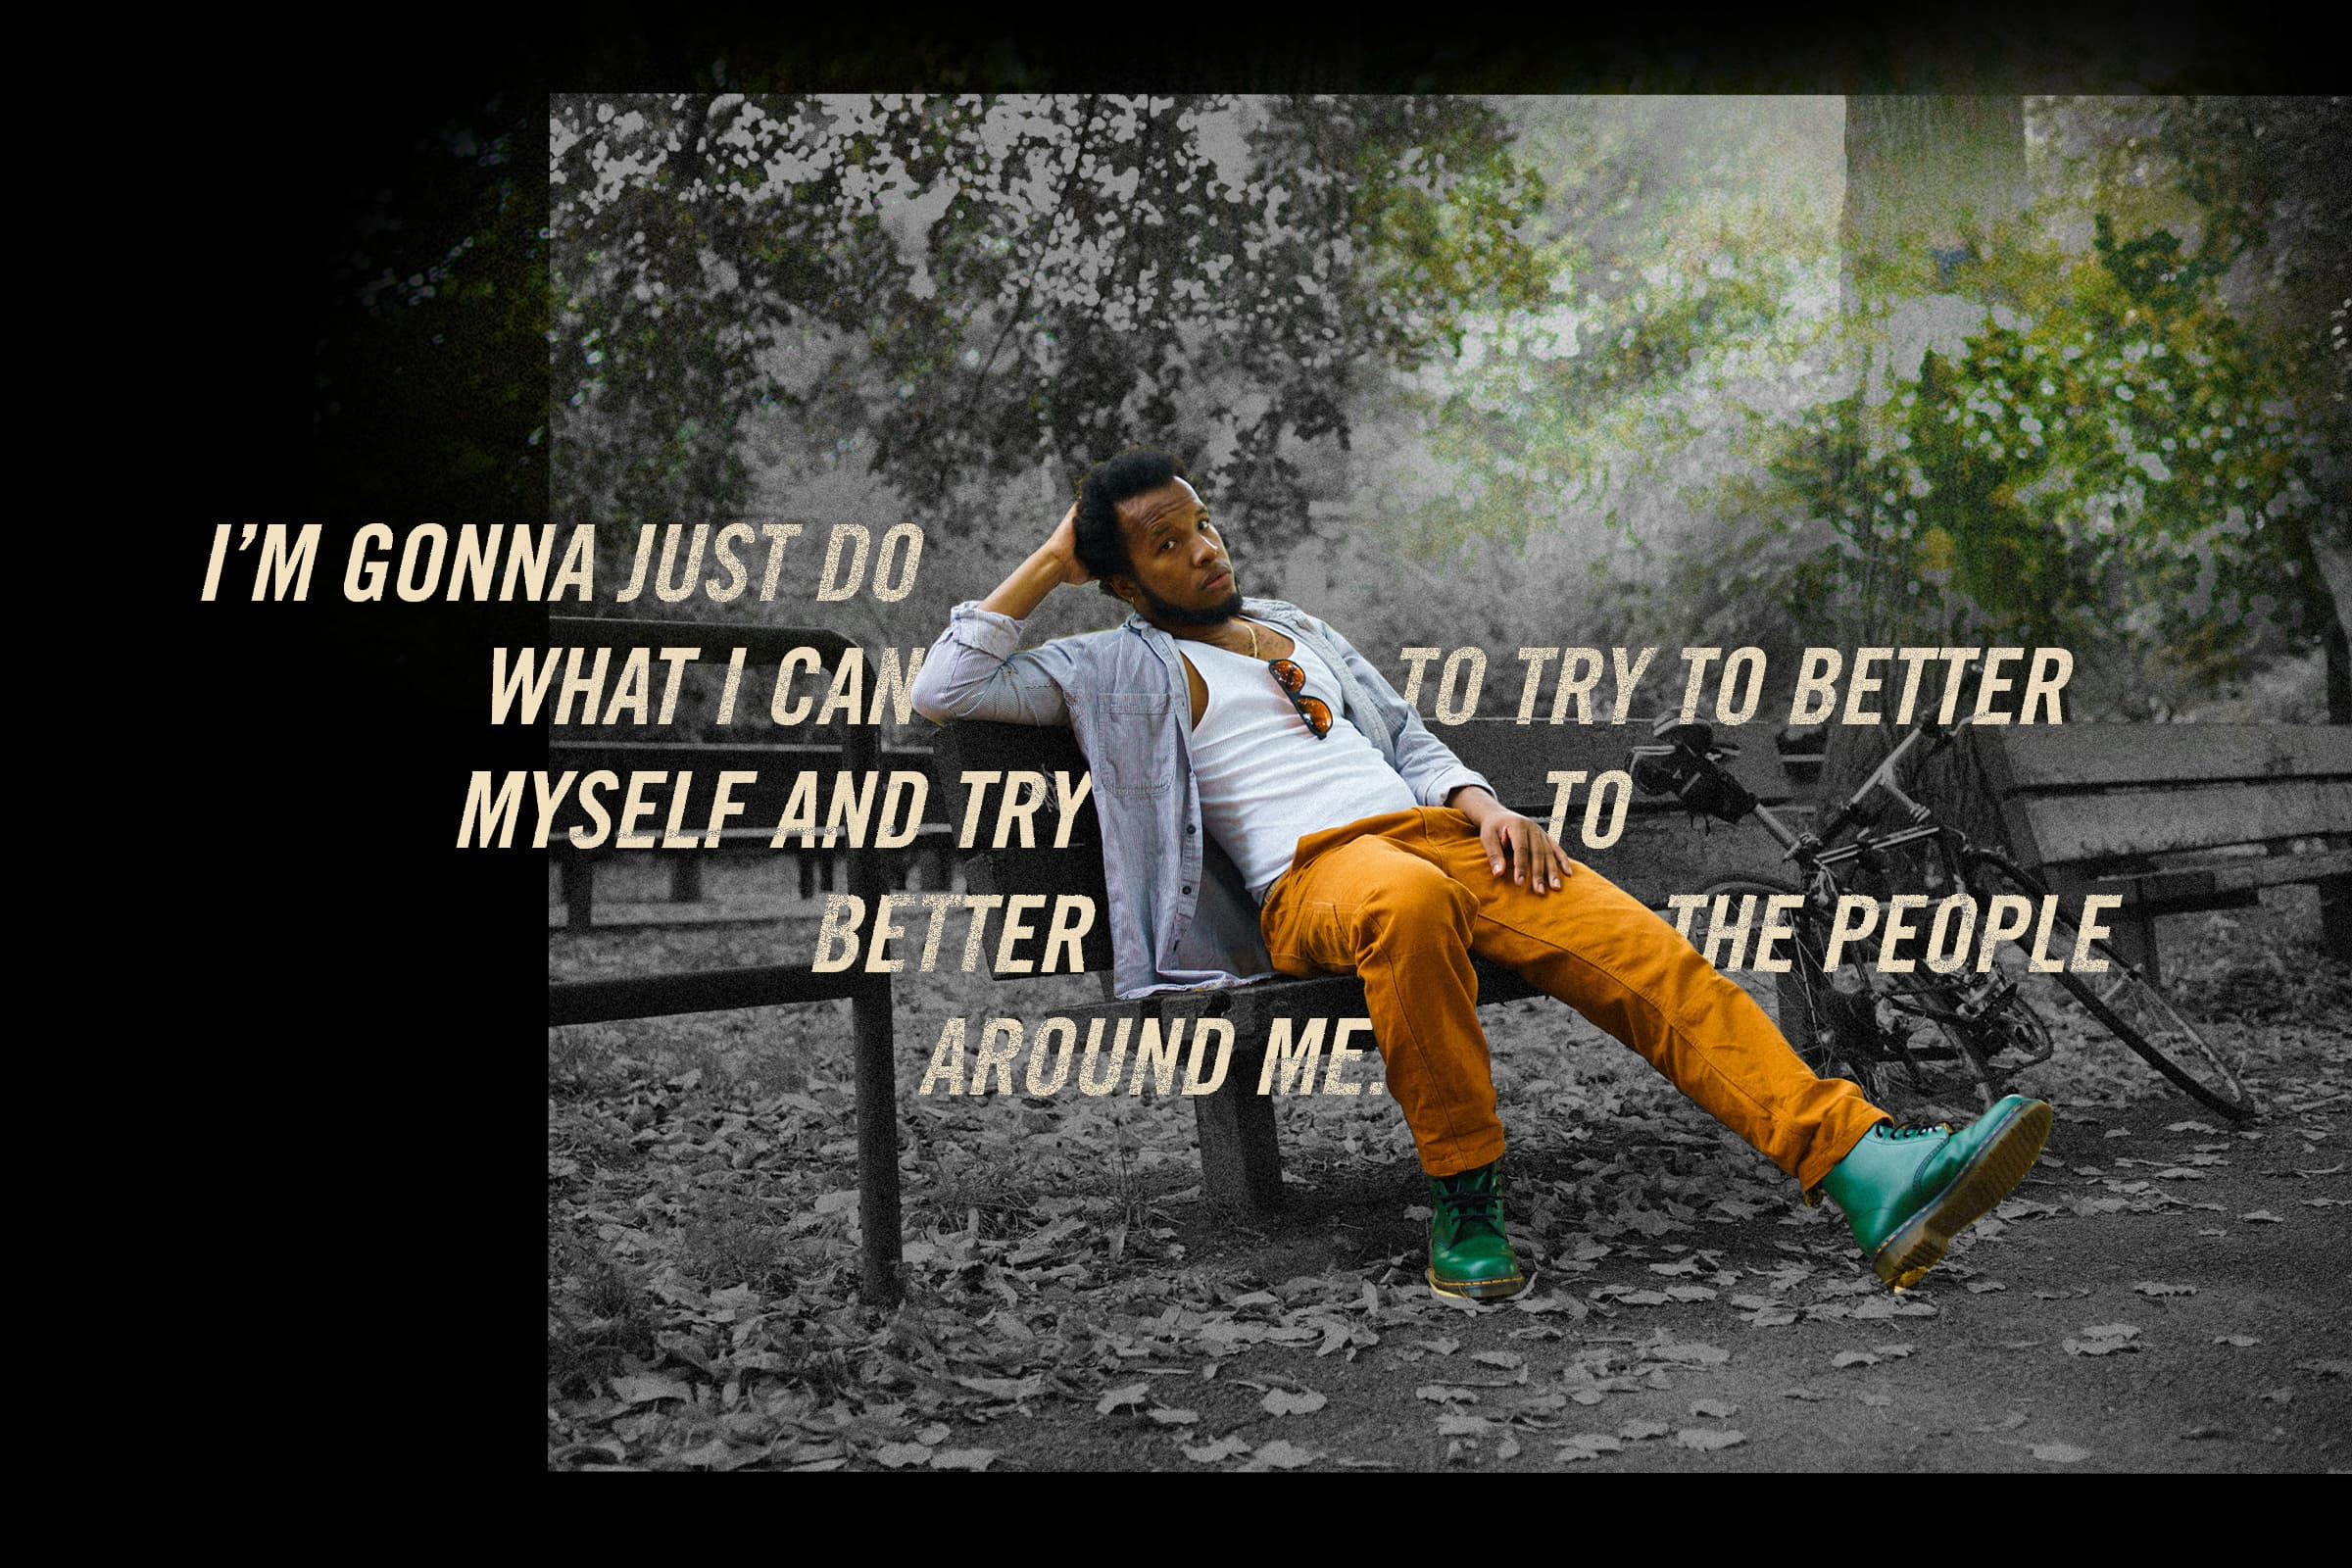 """A photo of Clay lounging on a bench overlaid with the words """"I'm gonna just do what I can to try to better myself and try to better the people around me."""""""